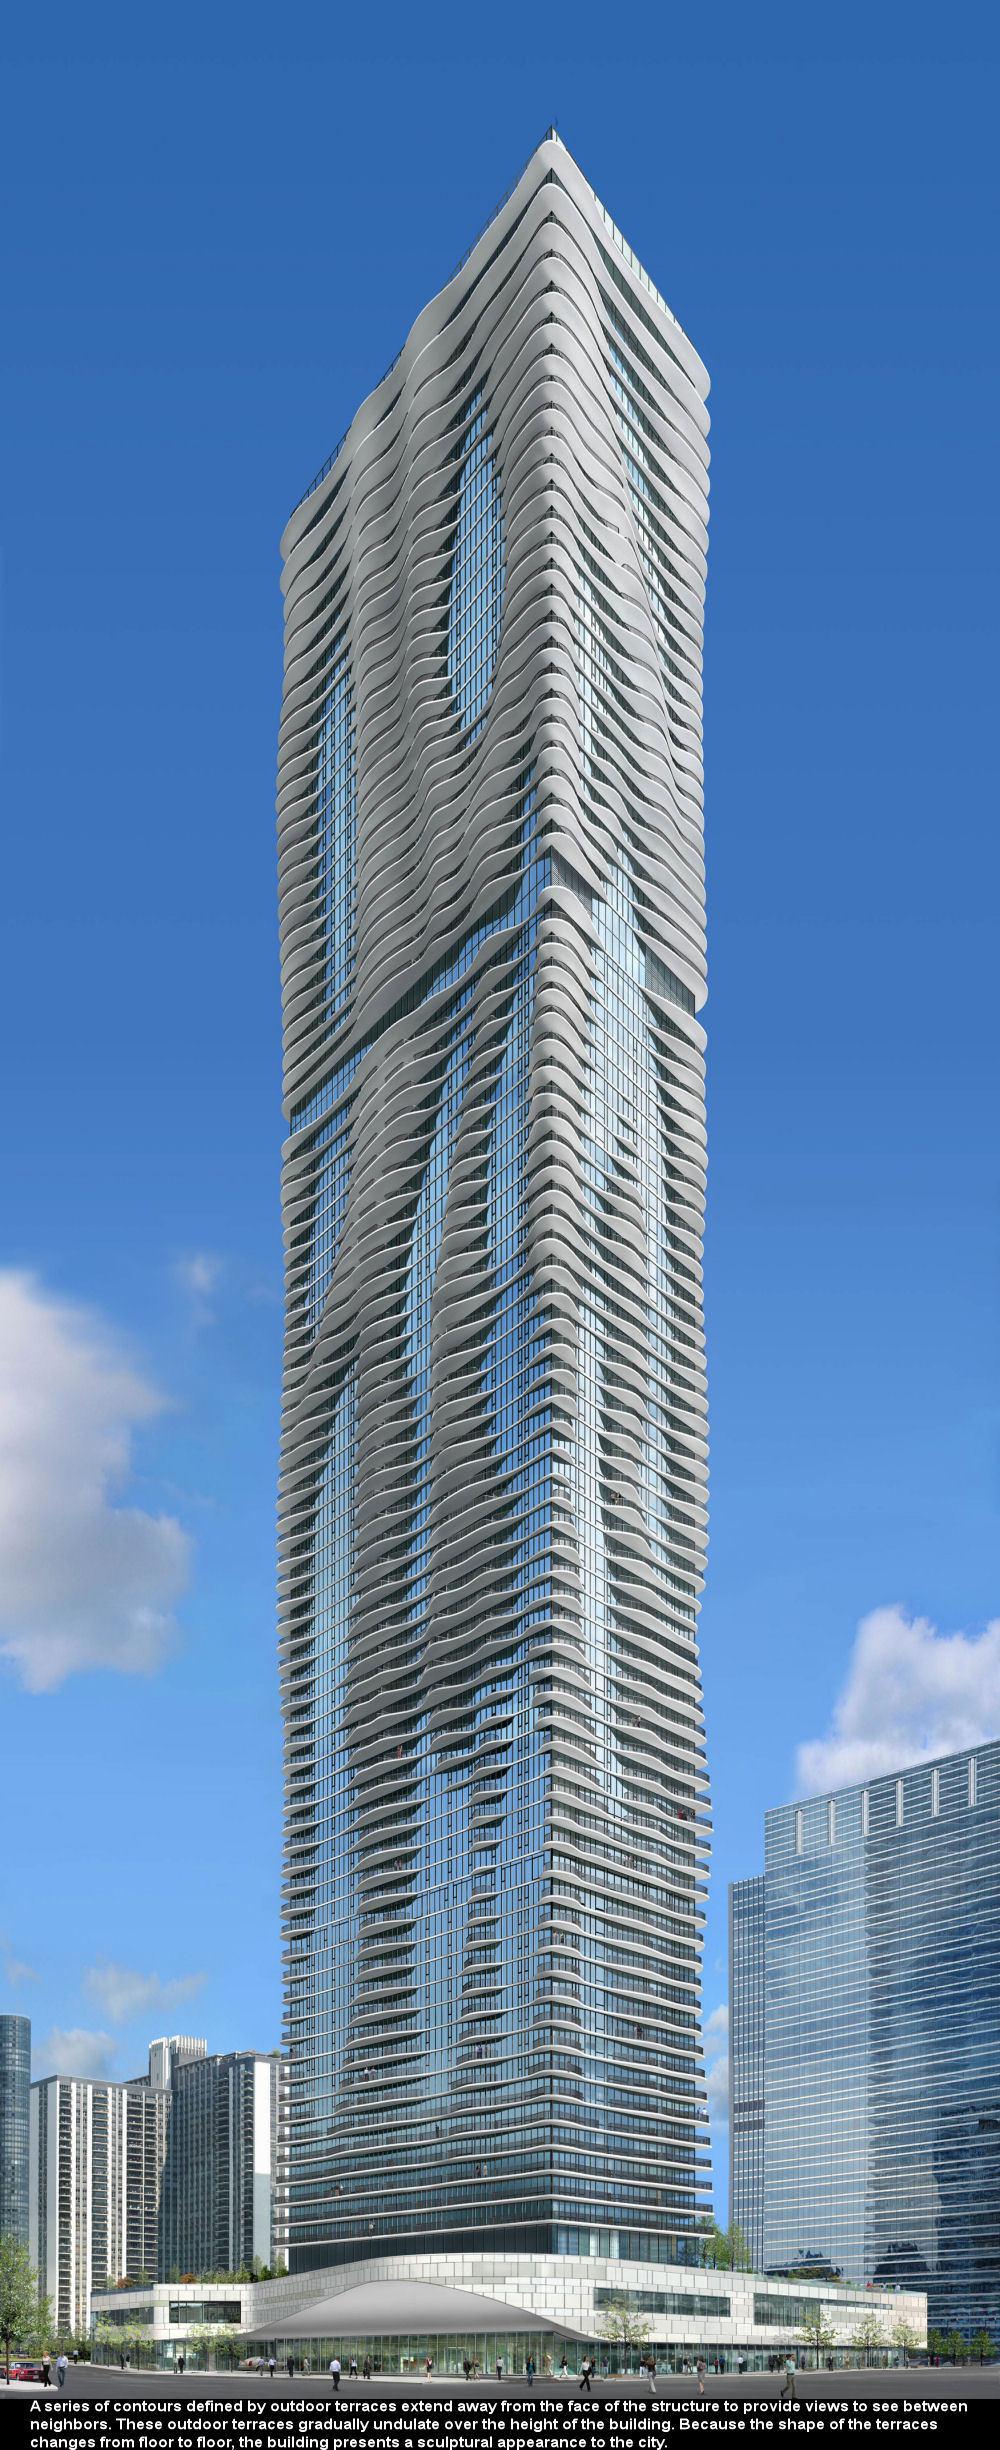 Beautiful Aqua Tower of Chicago